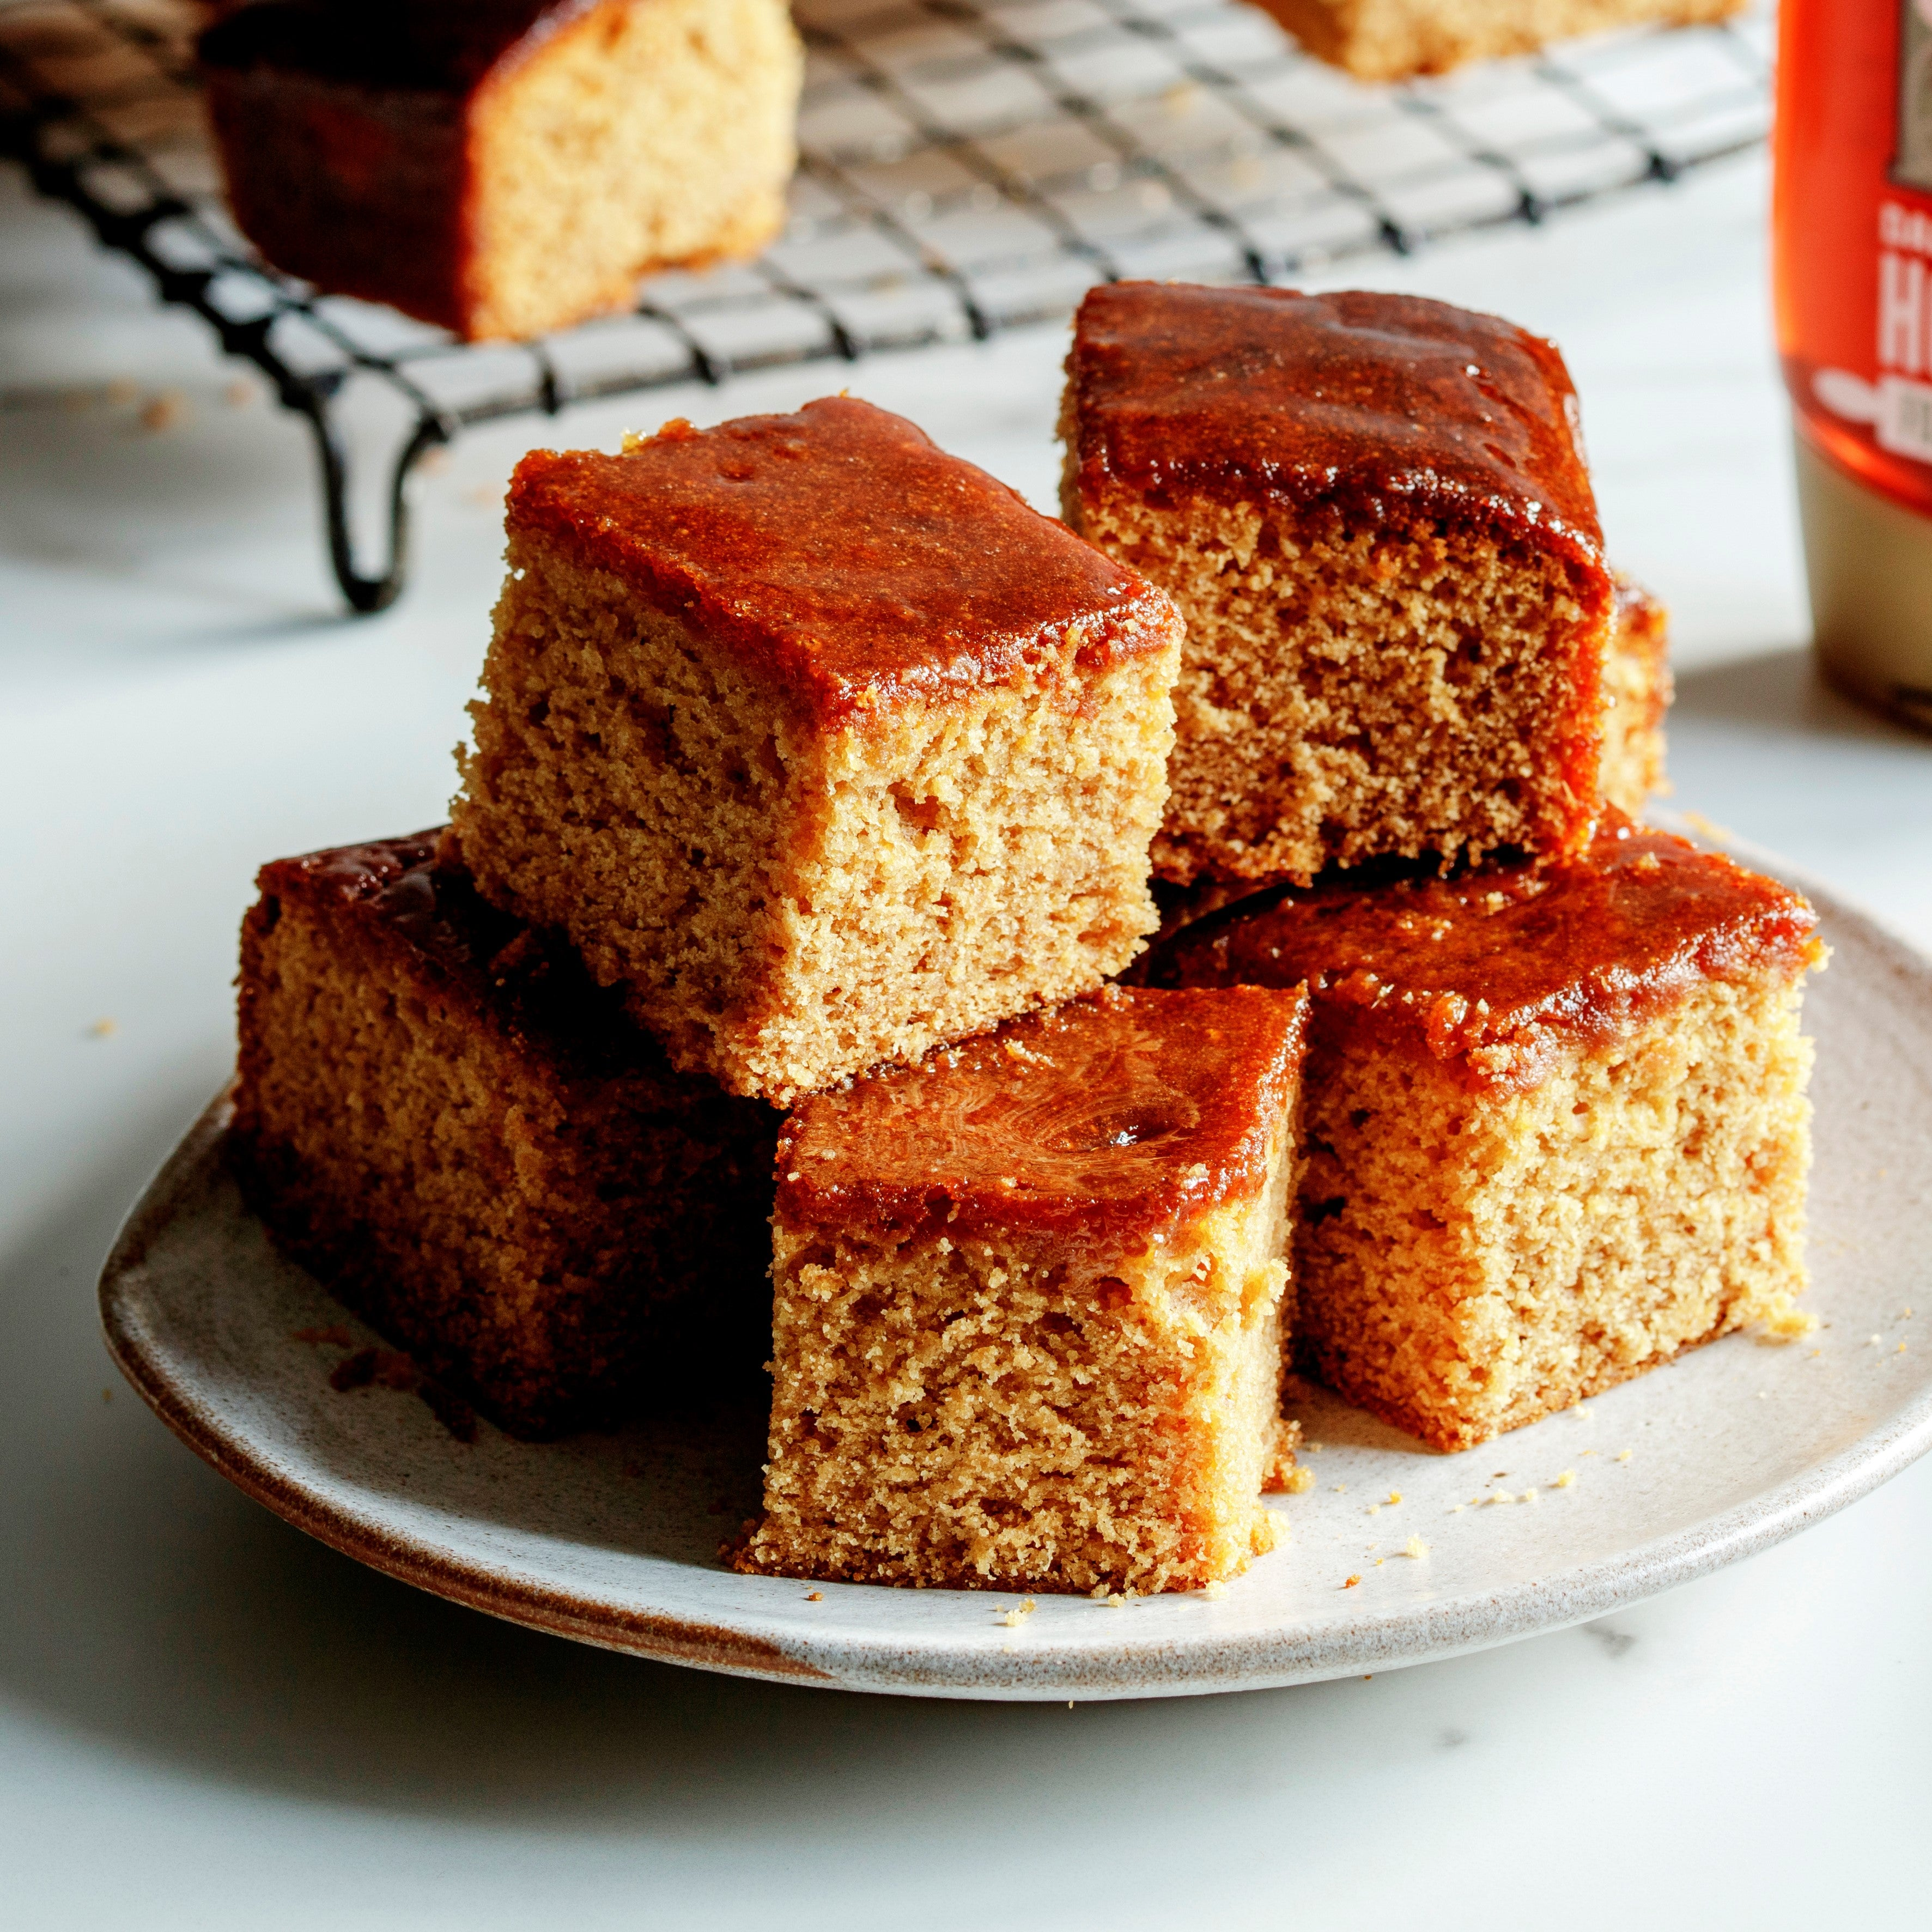 Squares of cake stacked on a plate